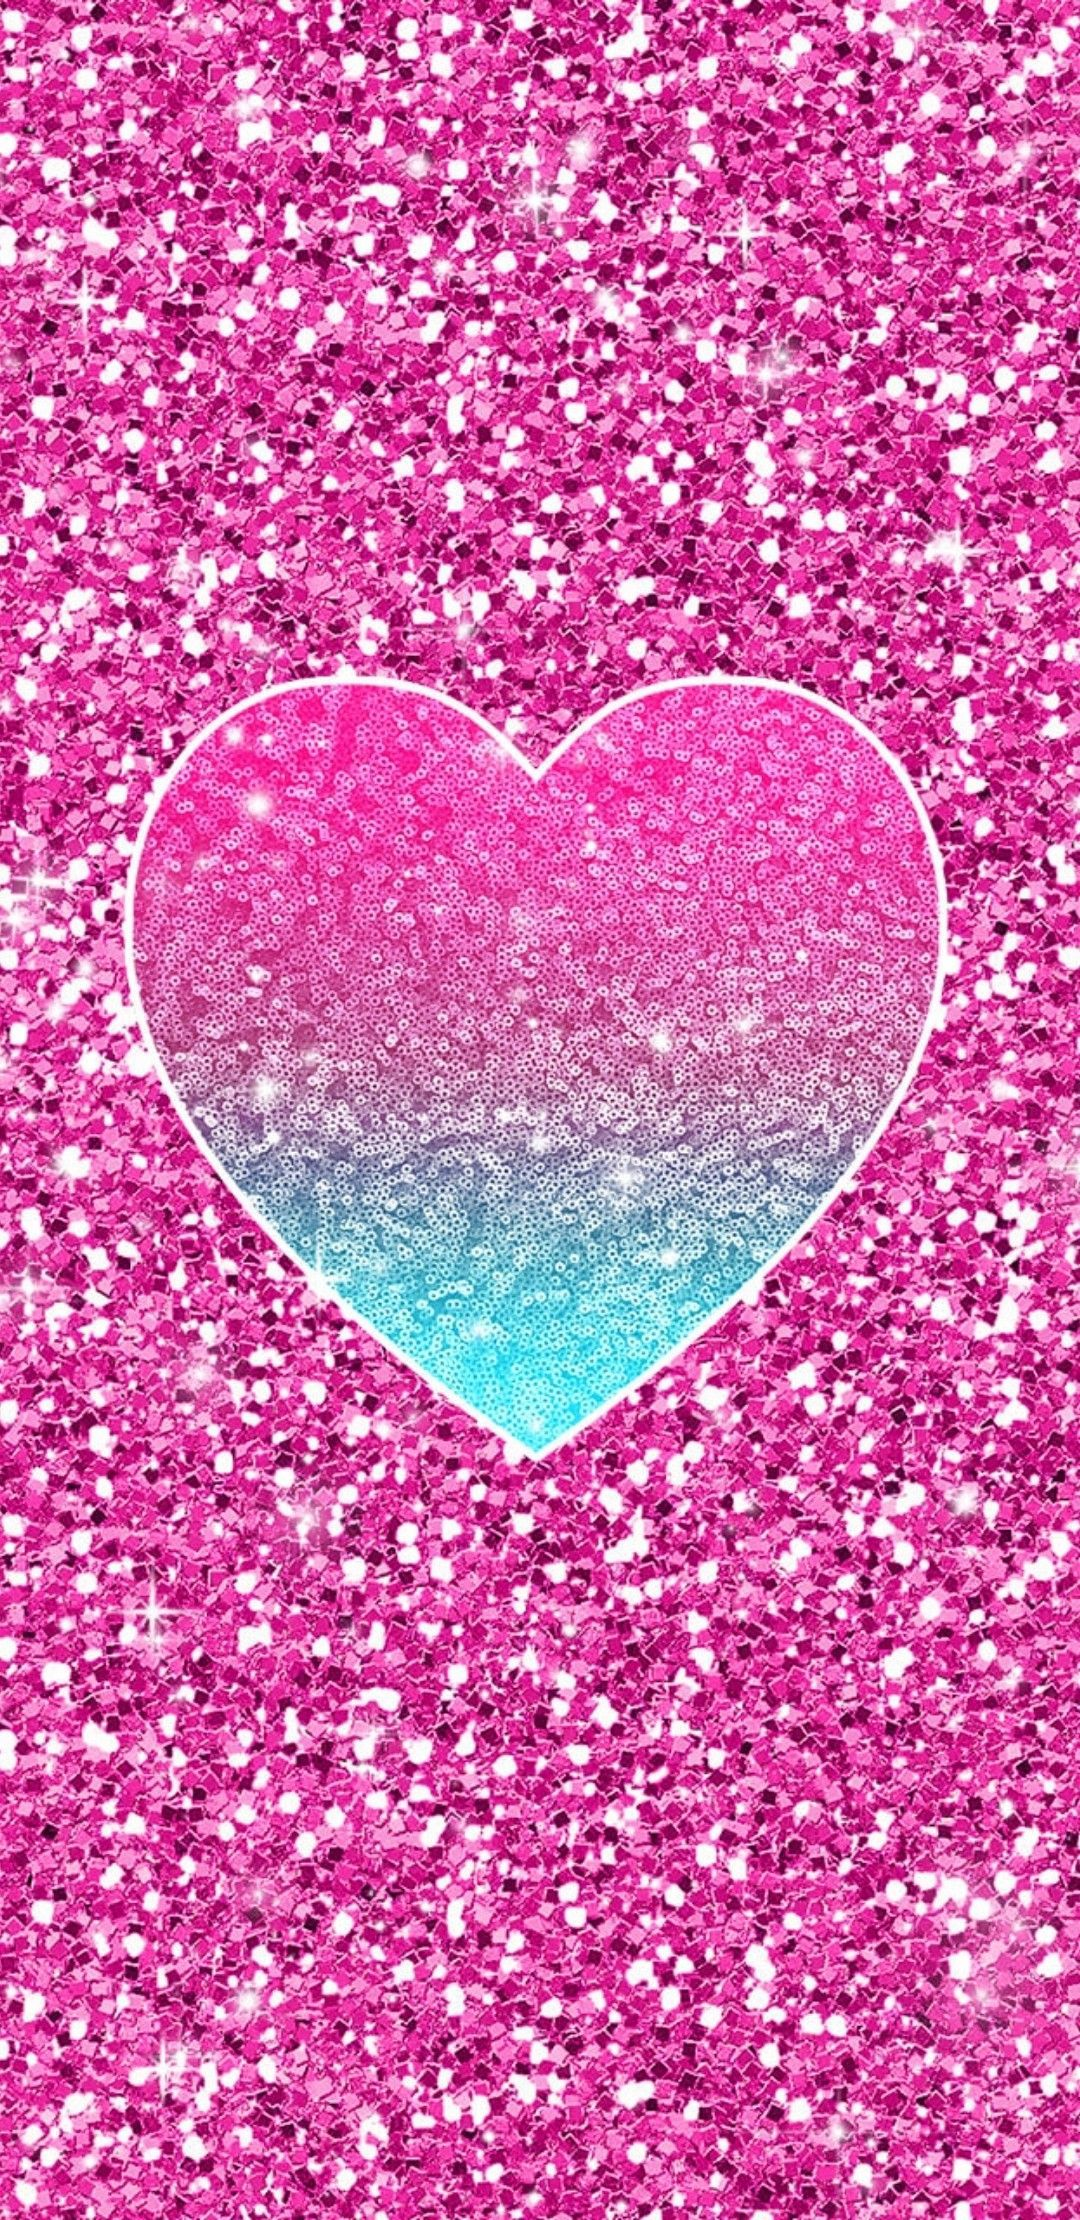 1080x2220 Turquoise & Pink Heart | Amy in 2019 | Glitter phone ...